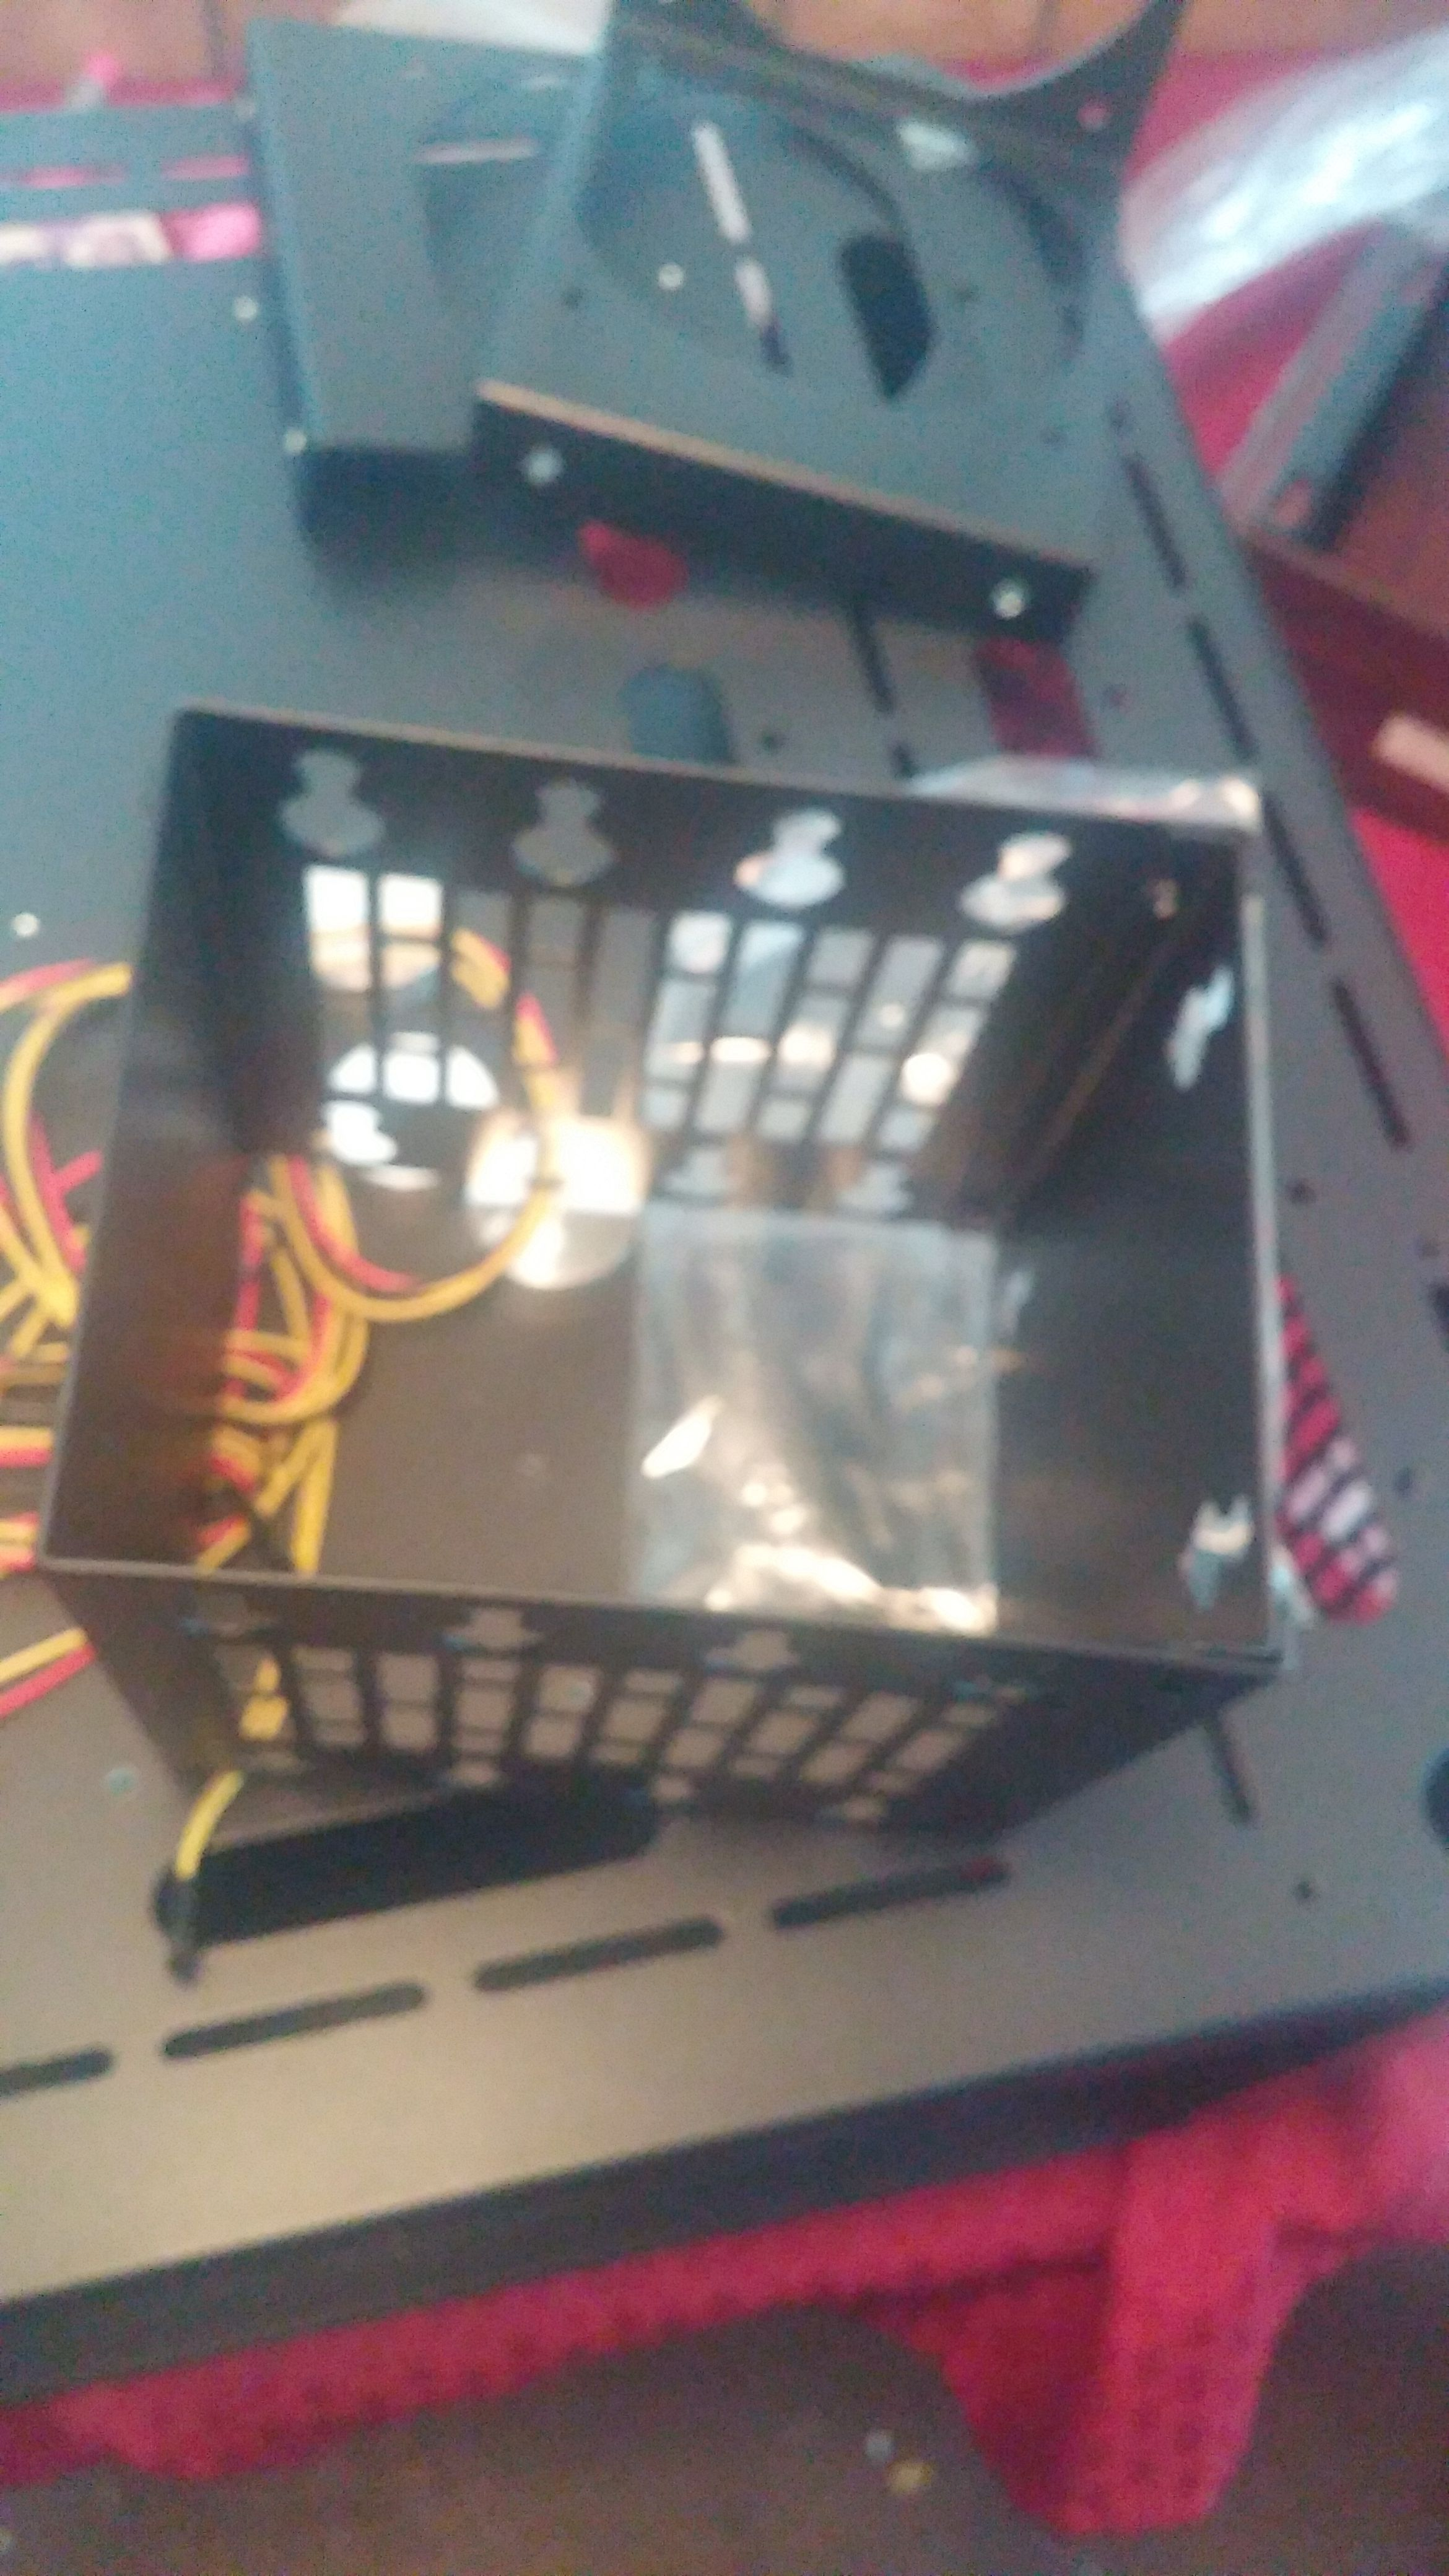 Another pic of the HDD Drive Cage, just to give you an idea of what it was.